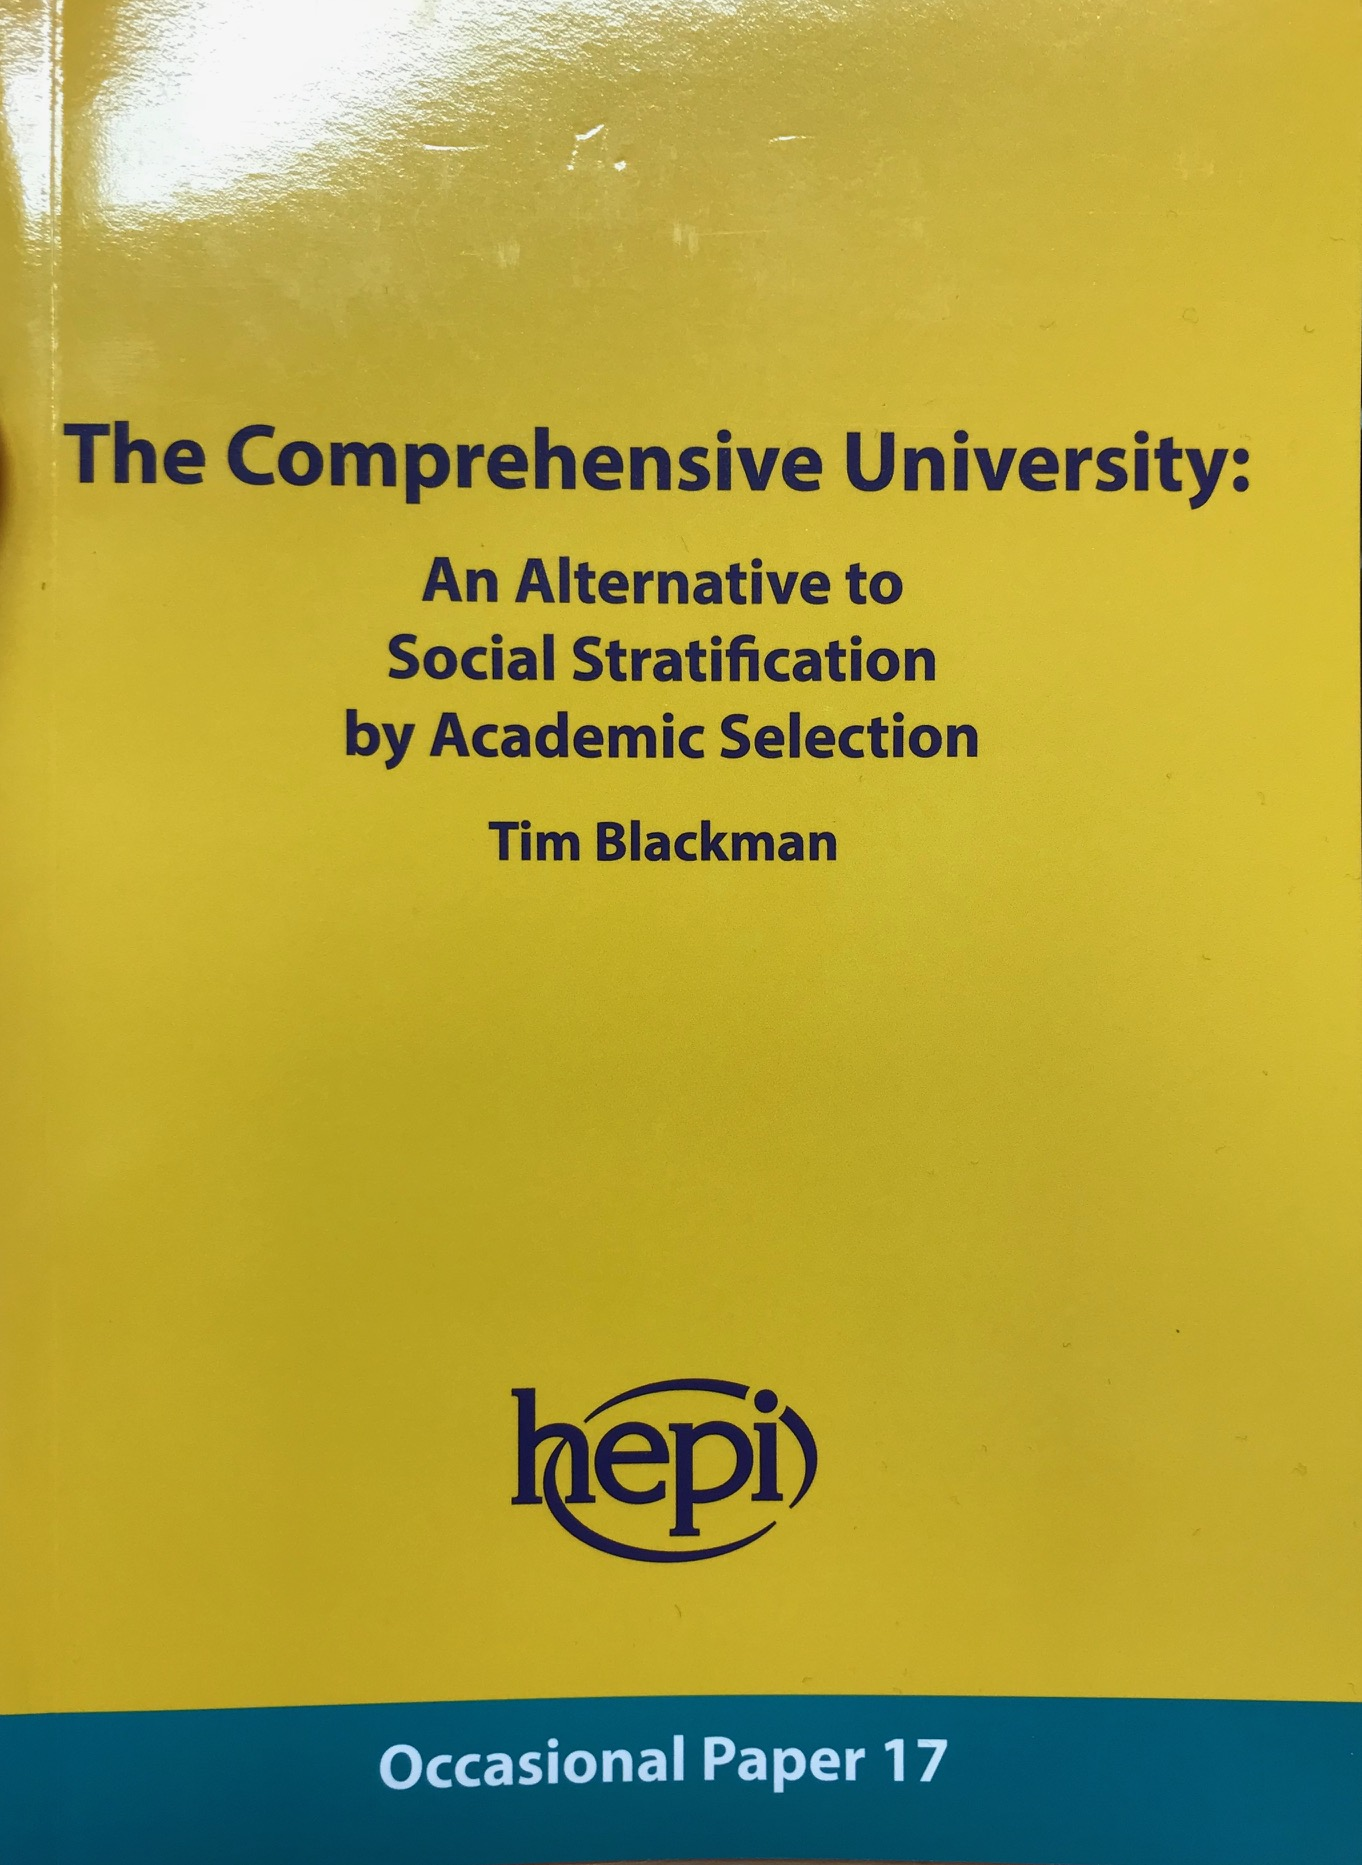 The Comprehensive University featured image